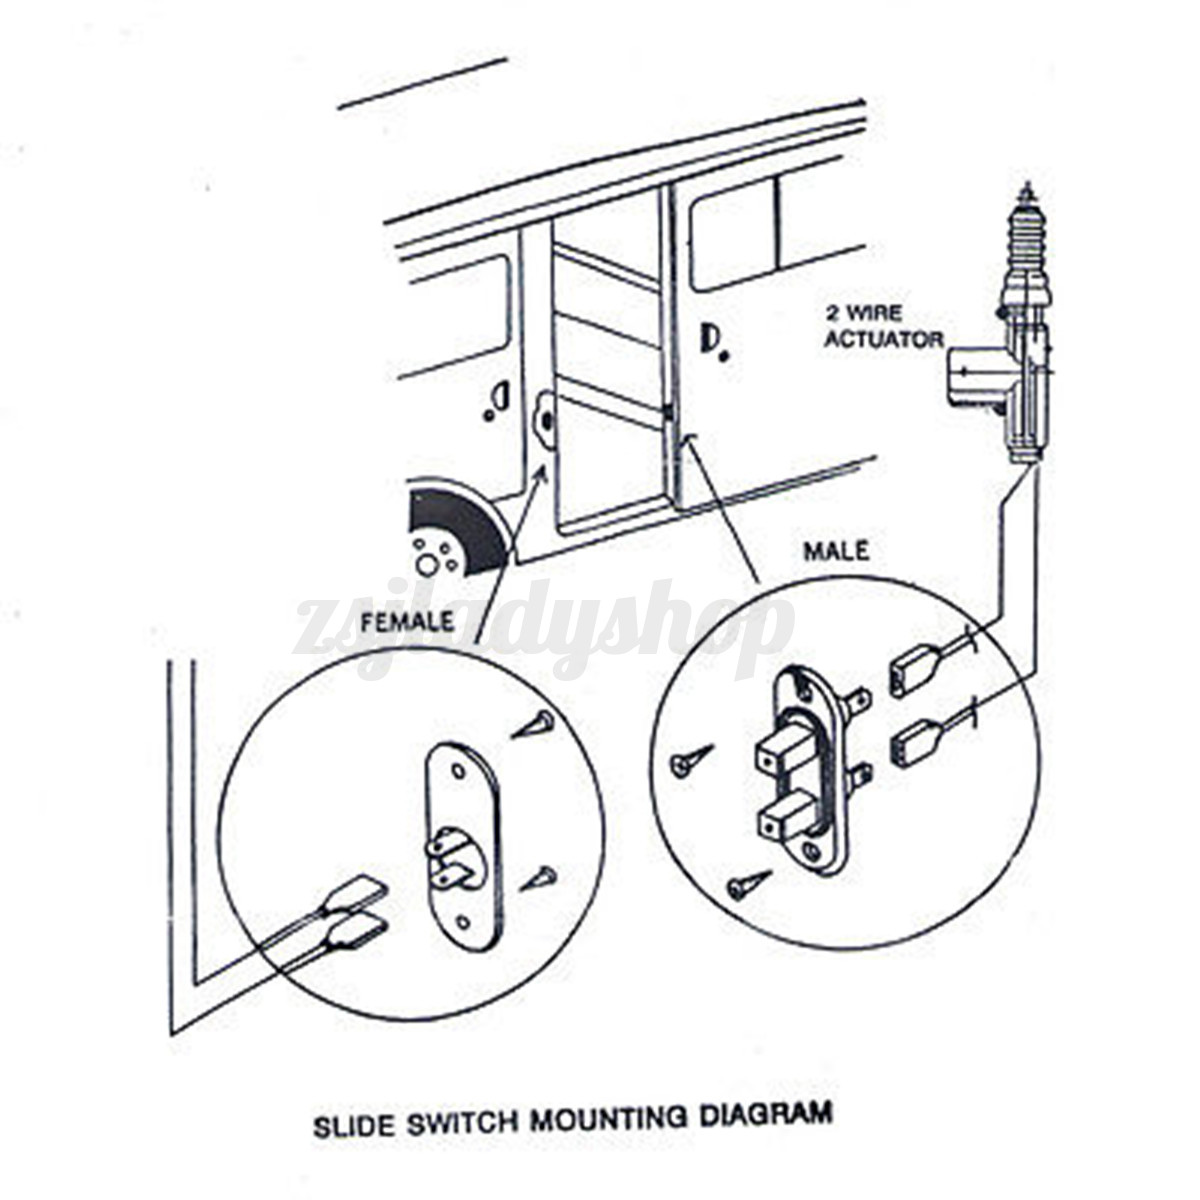 Vw Touran Wiring Diagram Drl Help Needed Page furthermore 2012 Passat Fuse Map further 482800022528094020 together with Volkswagen Jetta Fuse Location Diagrams together with Ford Fiesta Mk6 Fuse Box Diagram. on mk6 jetta fuse box diagram